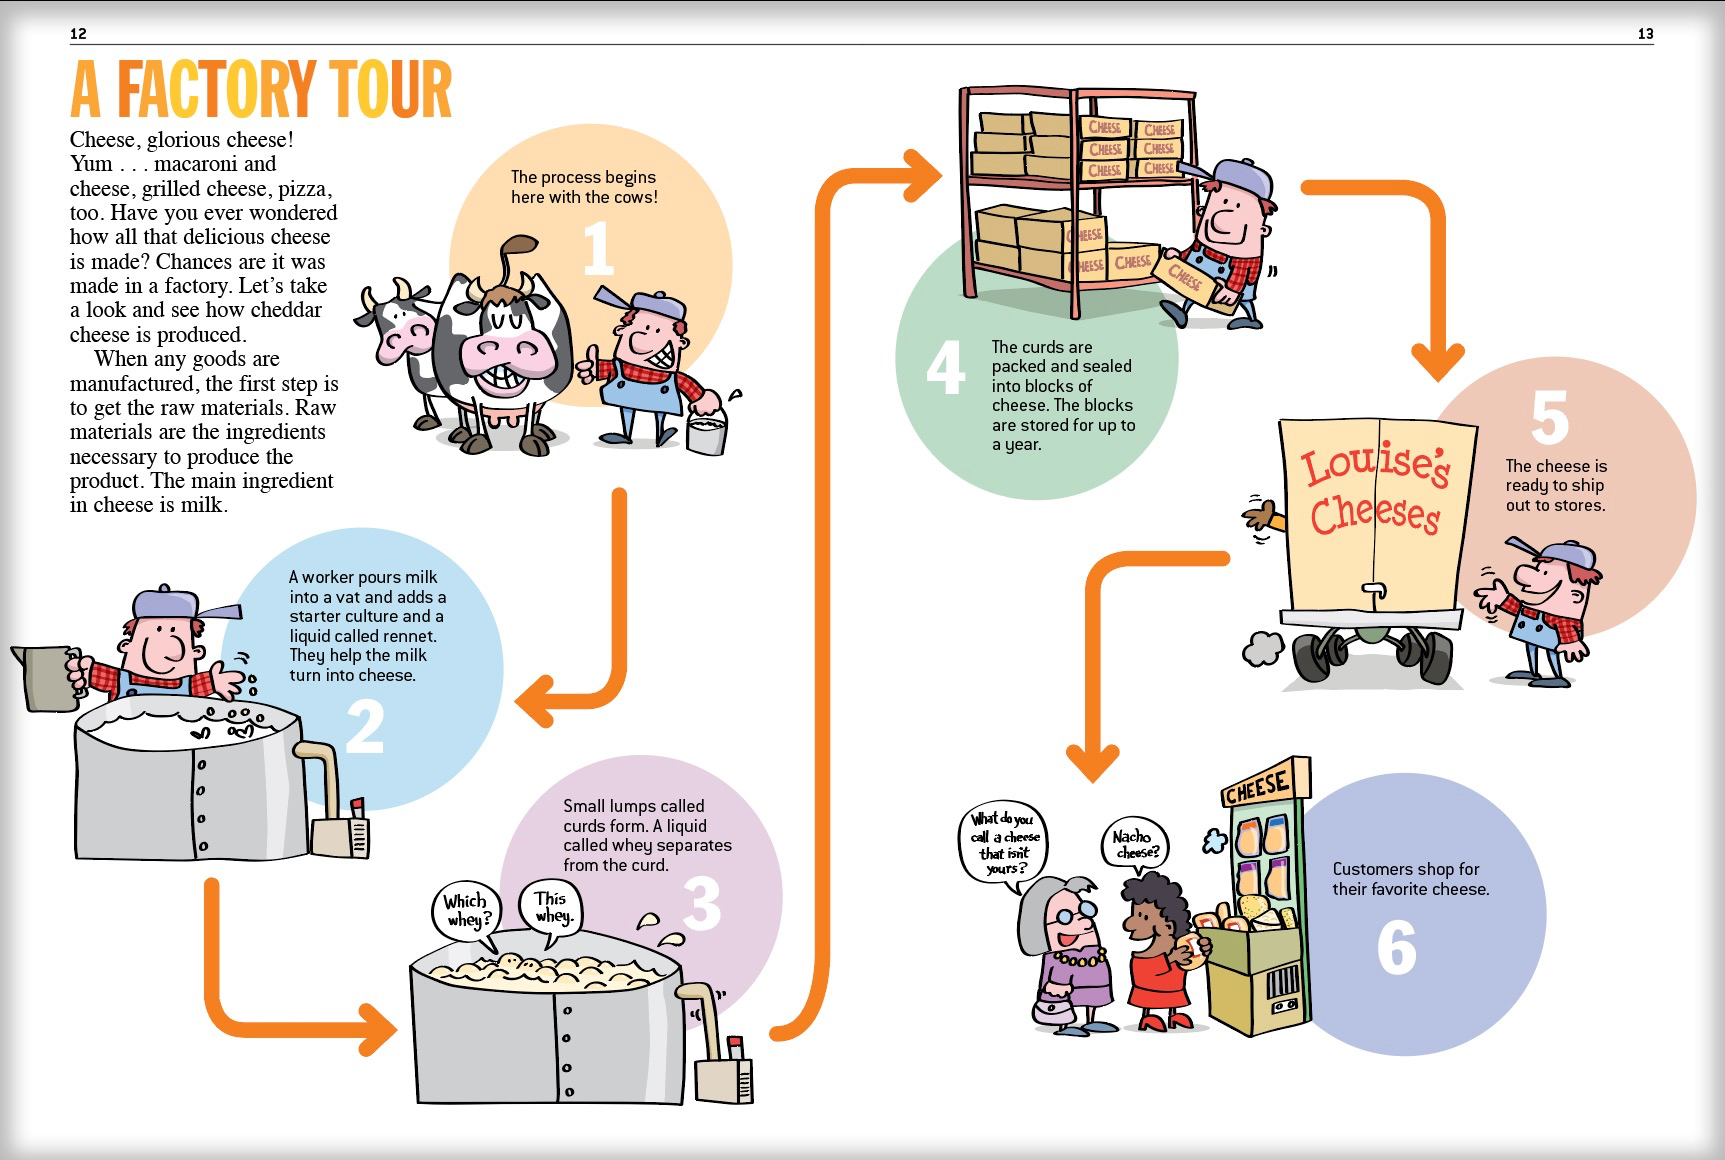 how to make a process diagram 2004 honda civic ac wiring infographics and infotoons for books magazines